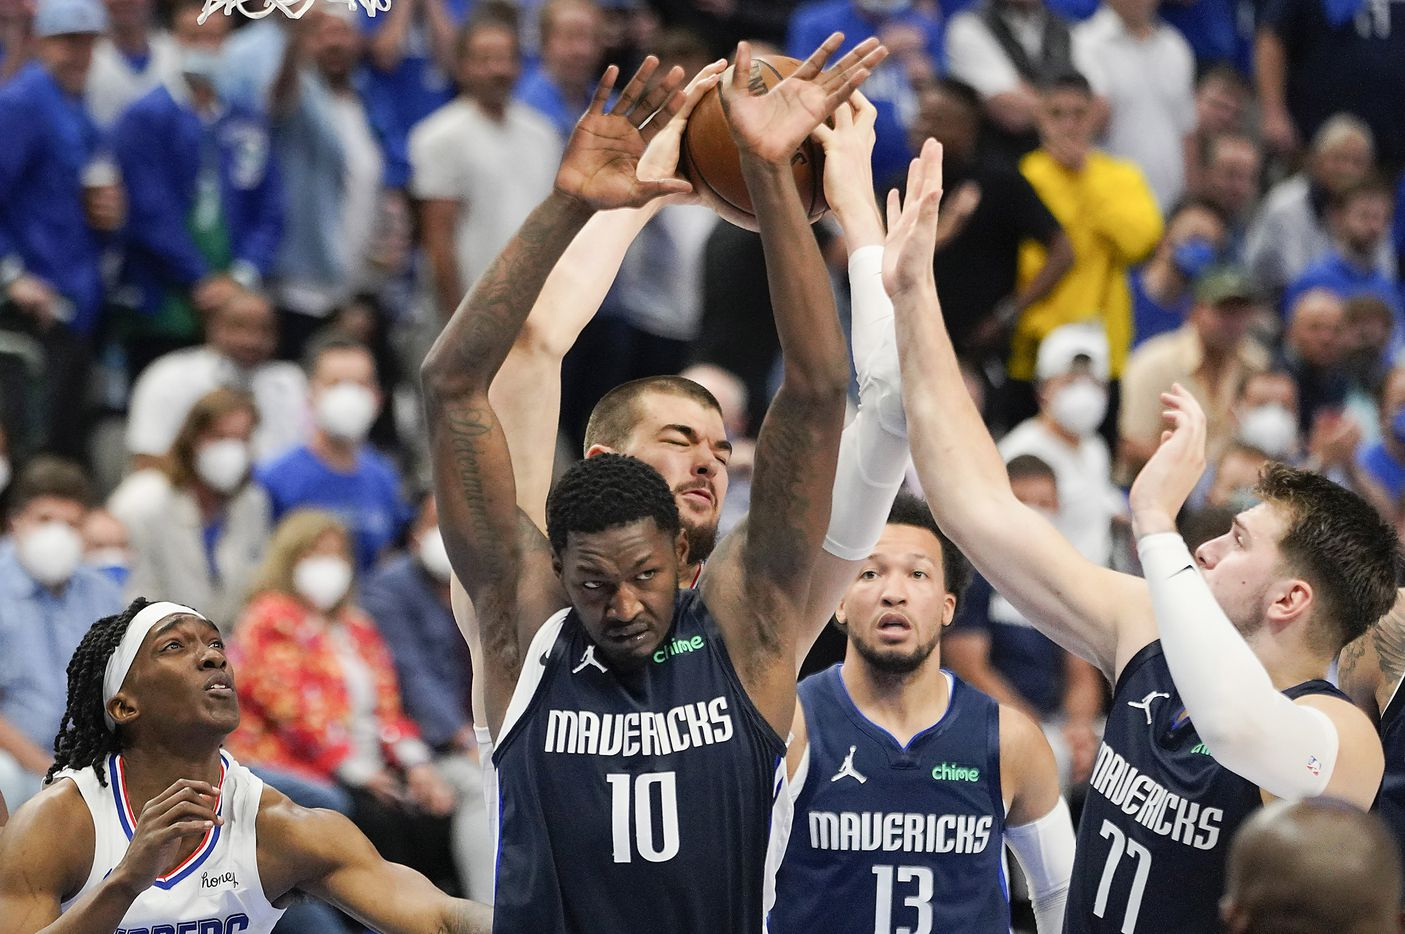 LA Clippers center Ivica Zubac (40) grabs a rebound away from Dallas Mavericks forward Dorian Finney-Smith (10) and guard Luka Doncic (77) during the second half  of an NBA playoff basketball game at American Airlines Center on Friday, May 28, 2021, in Dallas.